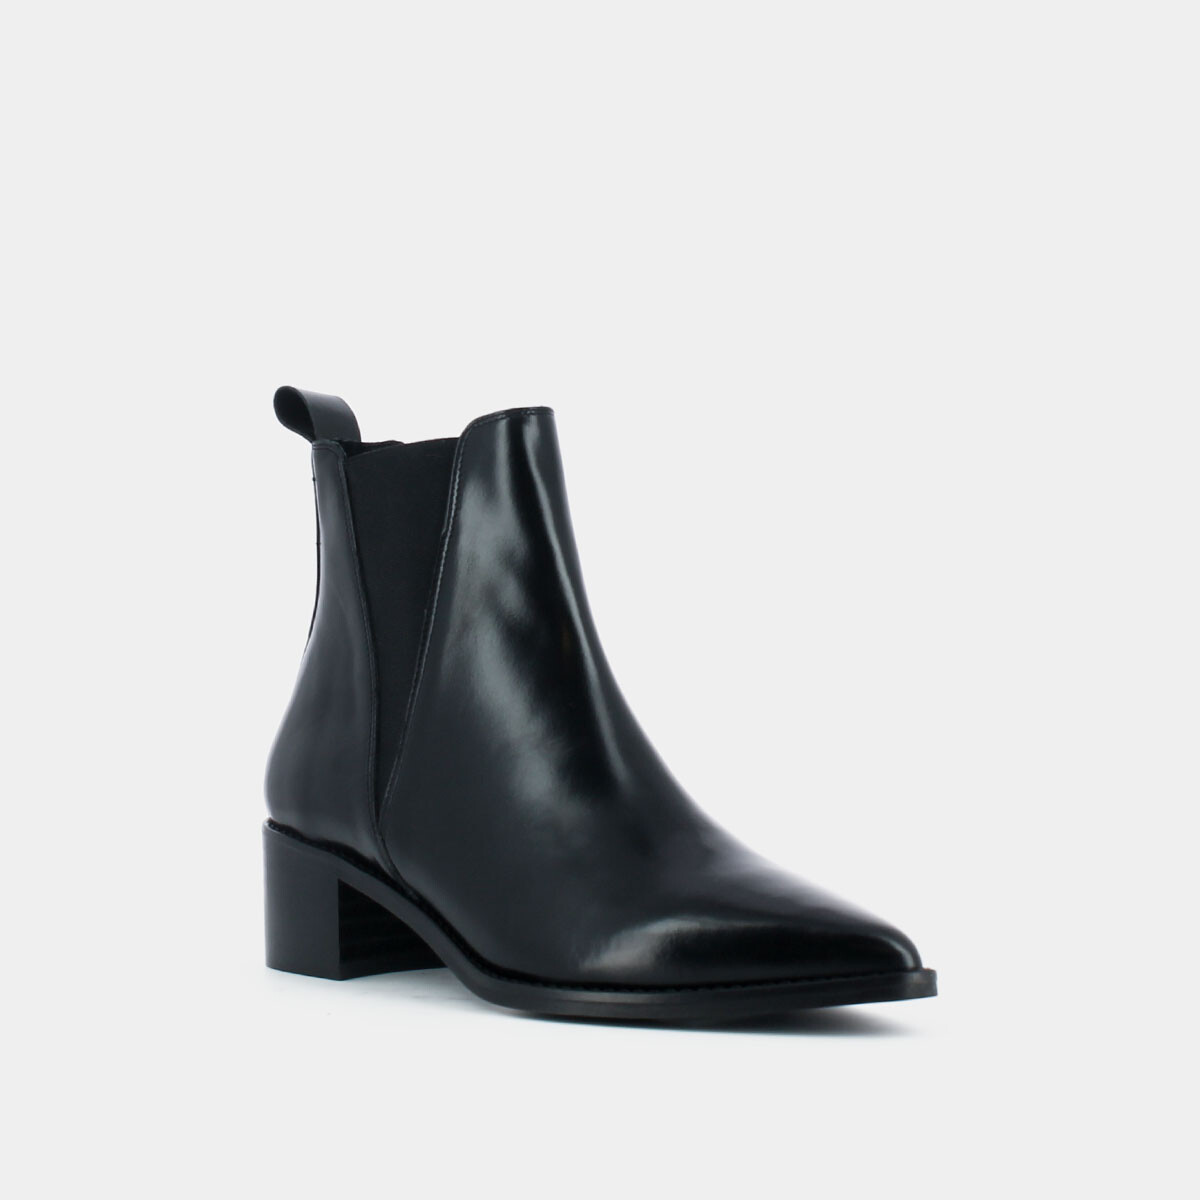 Heeled boots with pointed toe in black leather